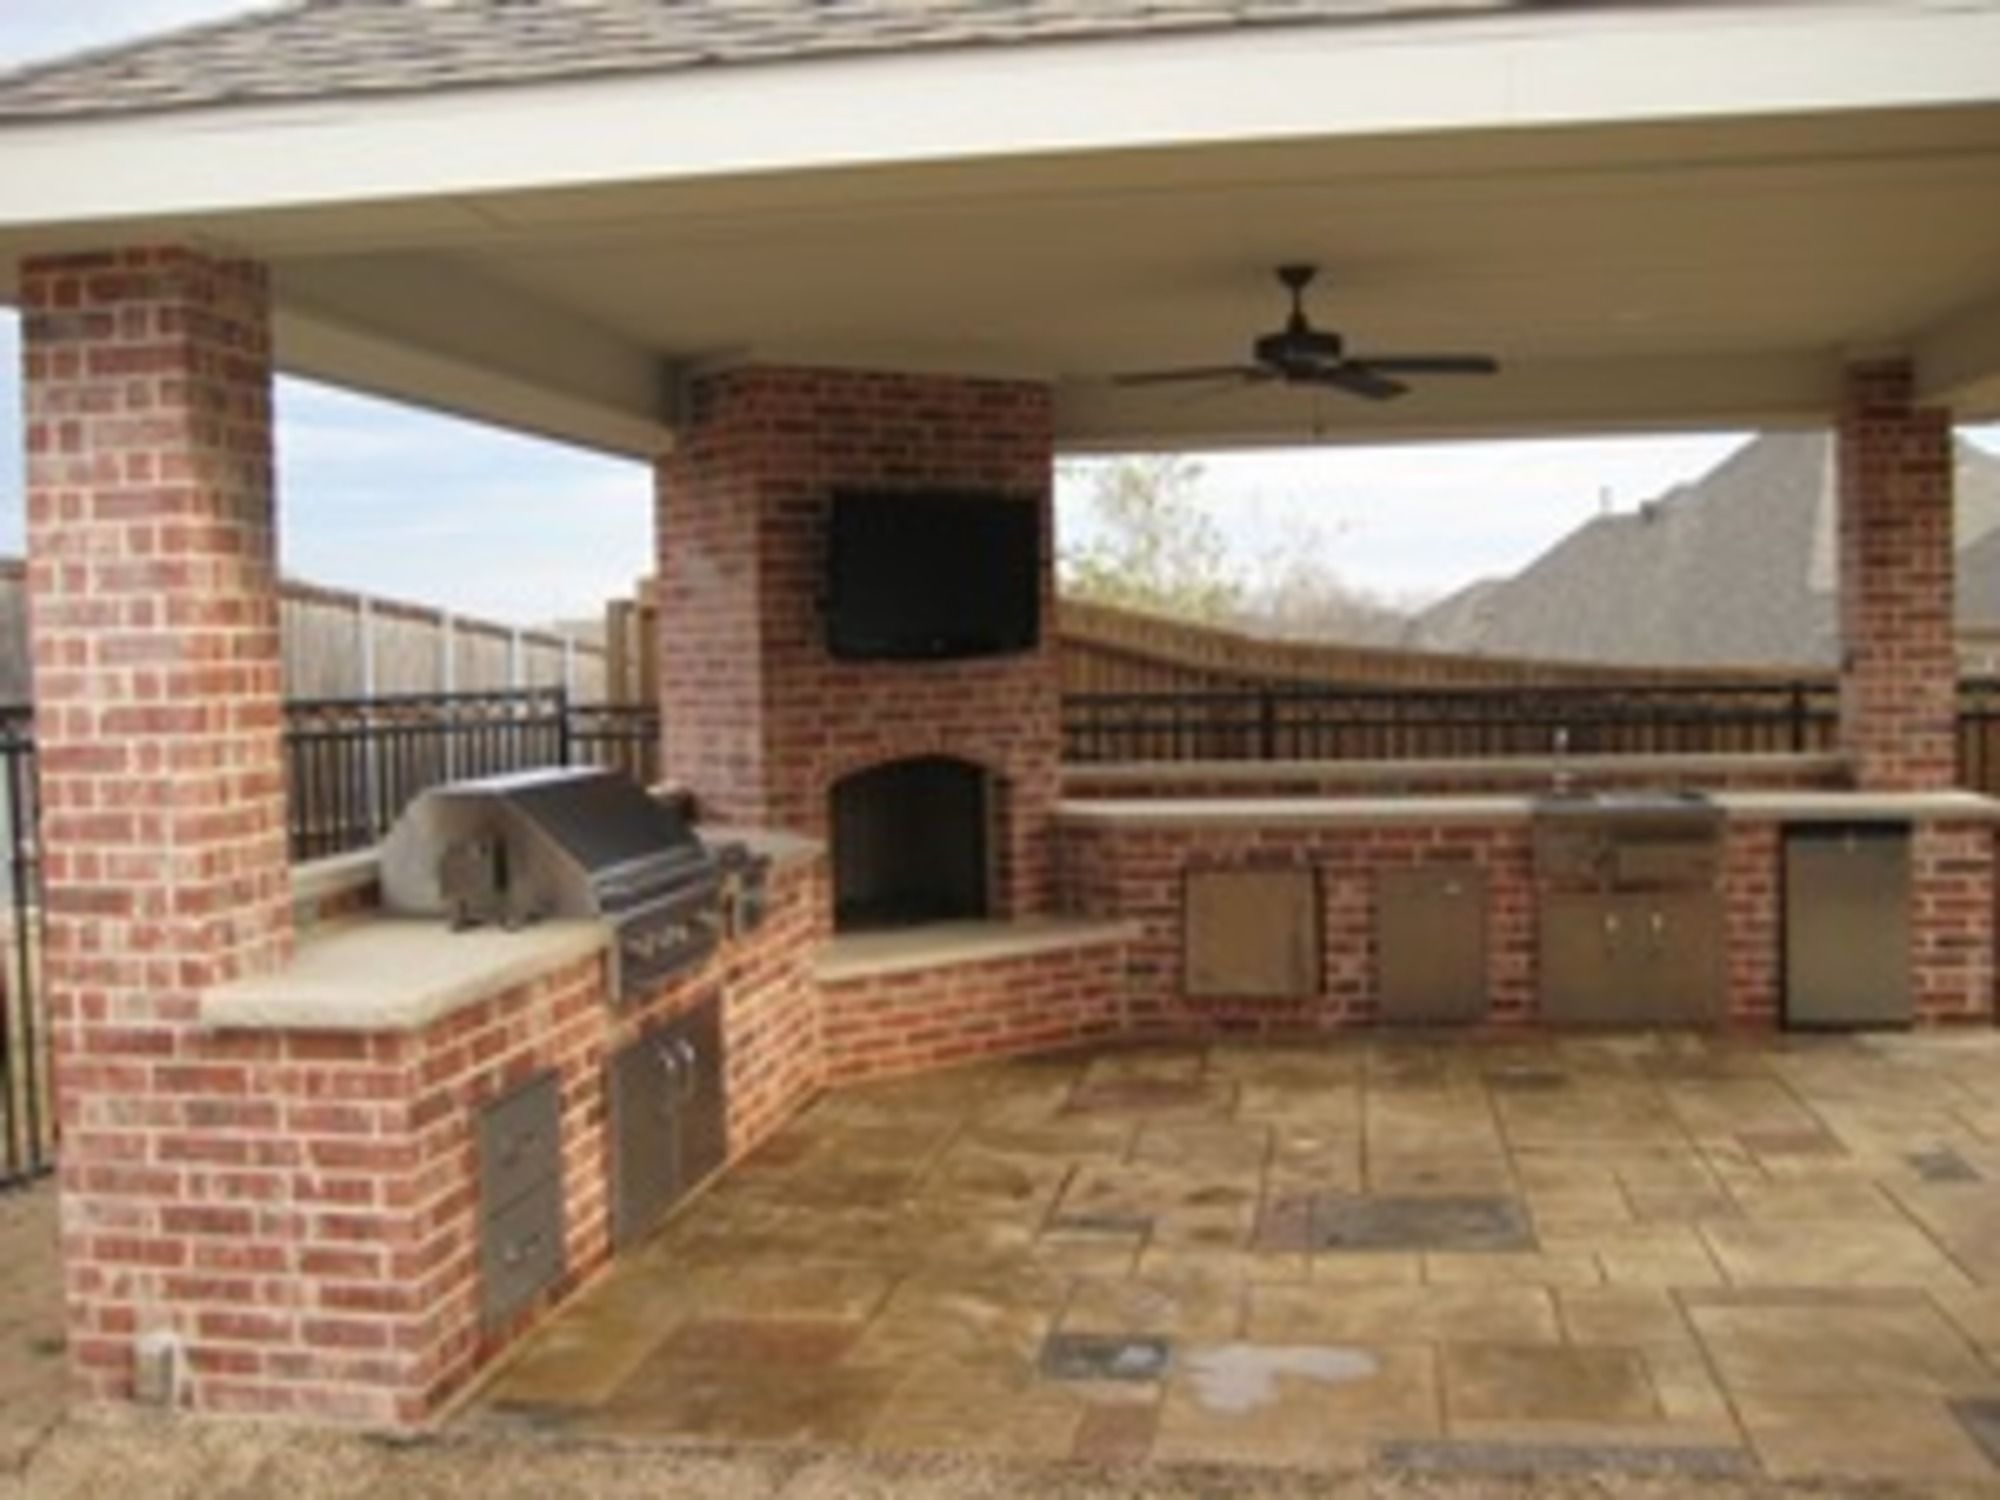 Outdoor Kitchens - Primo Outdoor Living on Primo Outdoor Living  id=52675